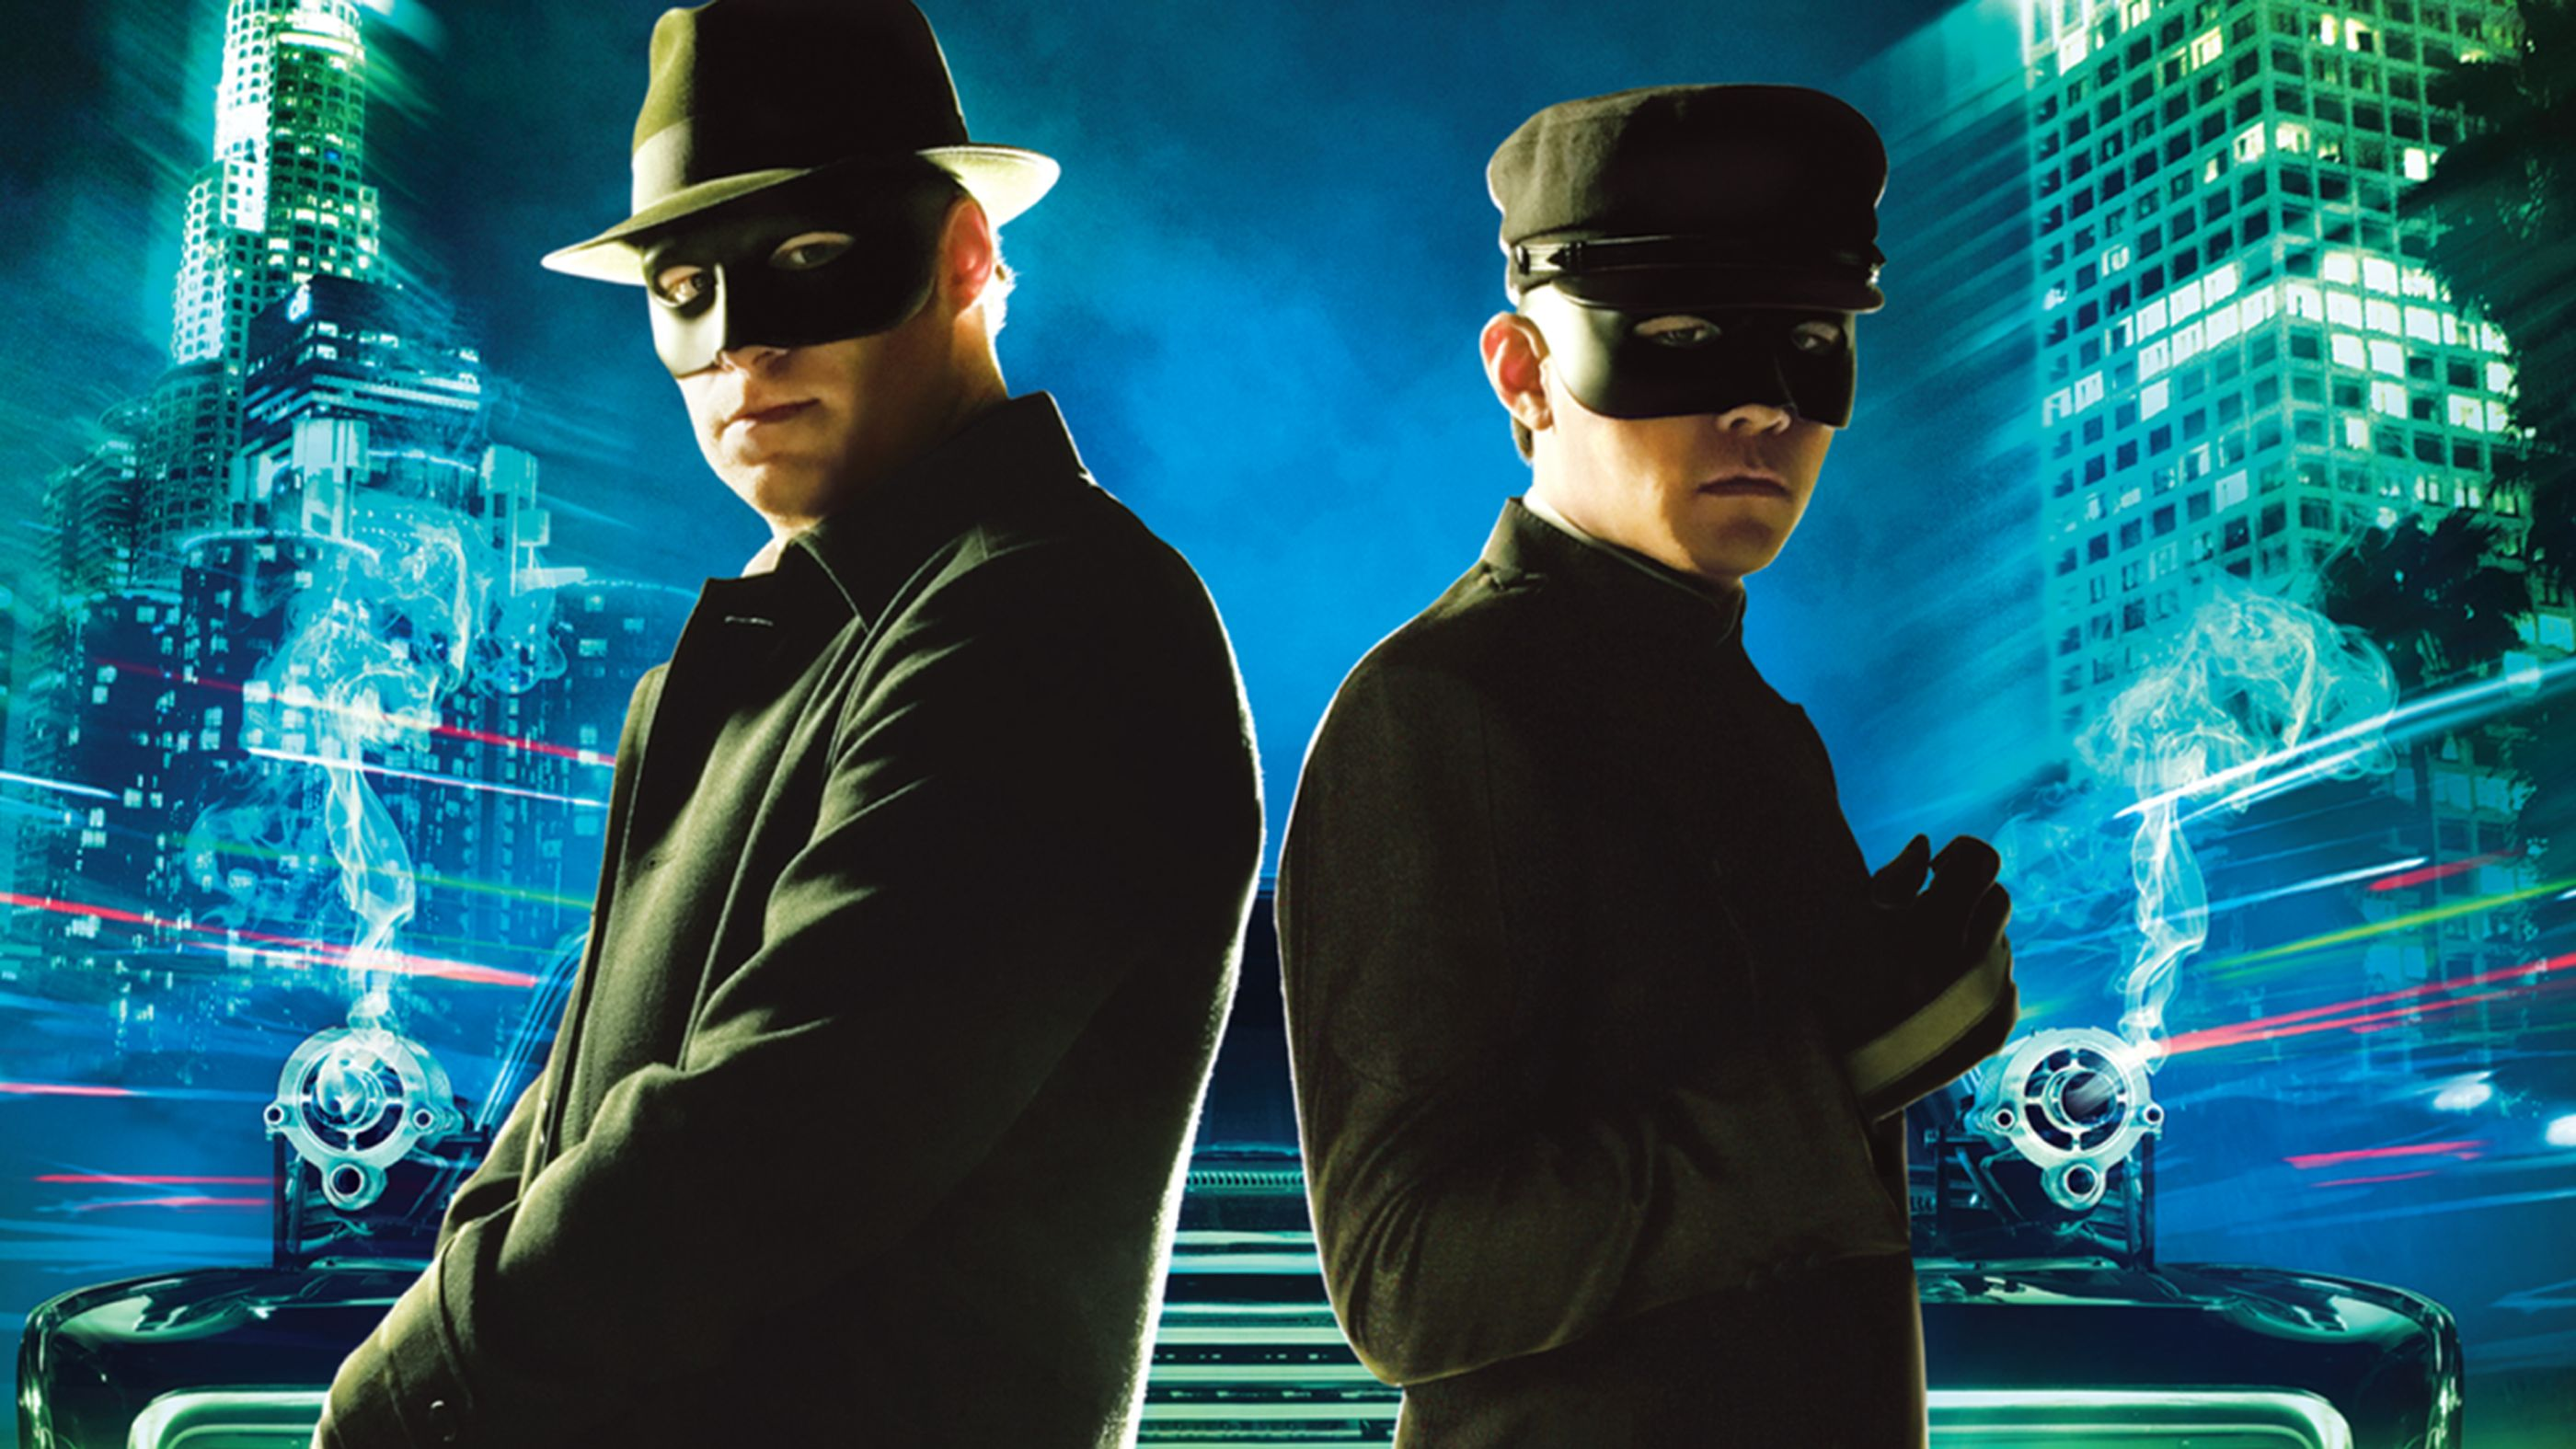 The Green Hornet | Full Movie | Movies Anywhere